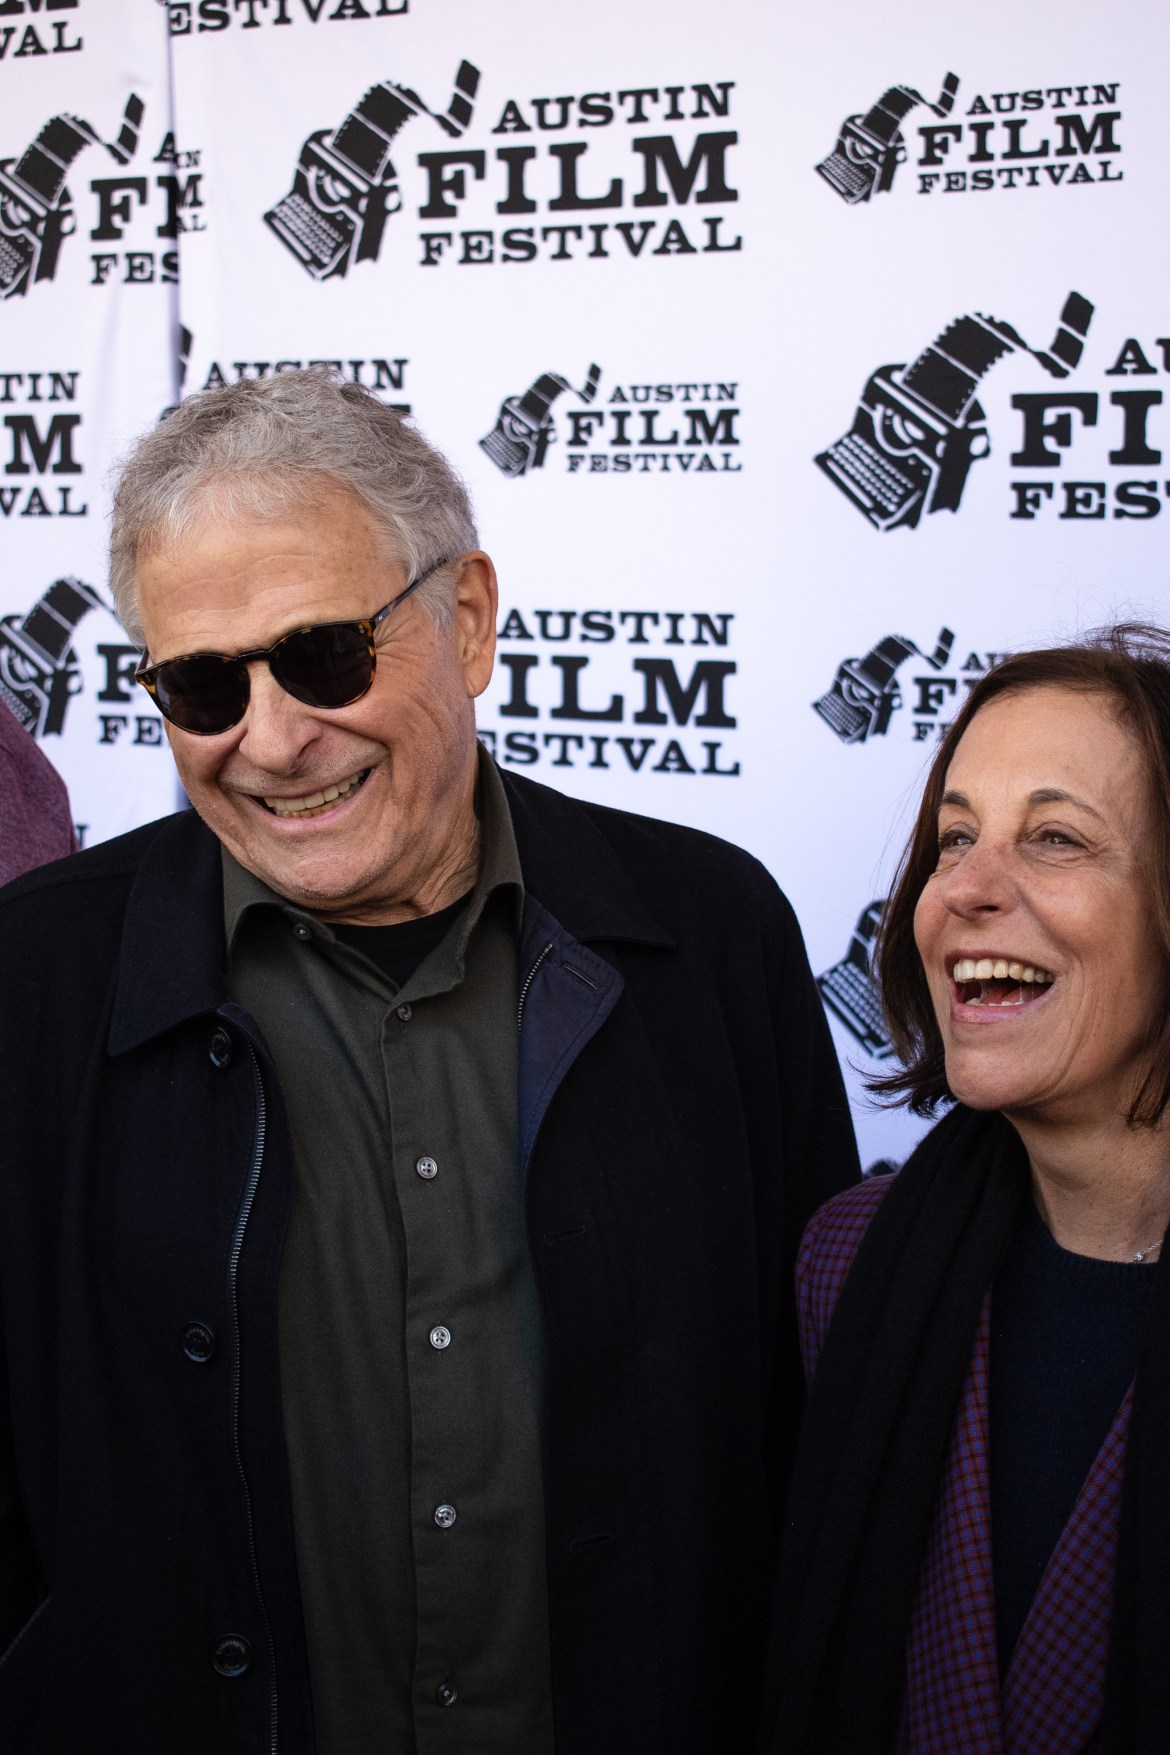 Man (left) and woman (right) laughed together during an interview on the red carpet.